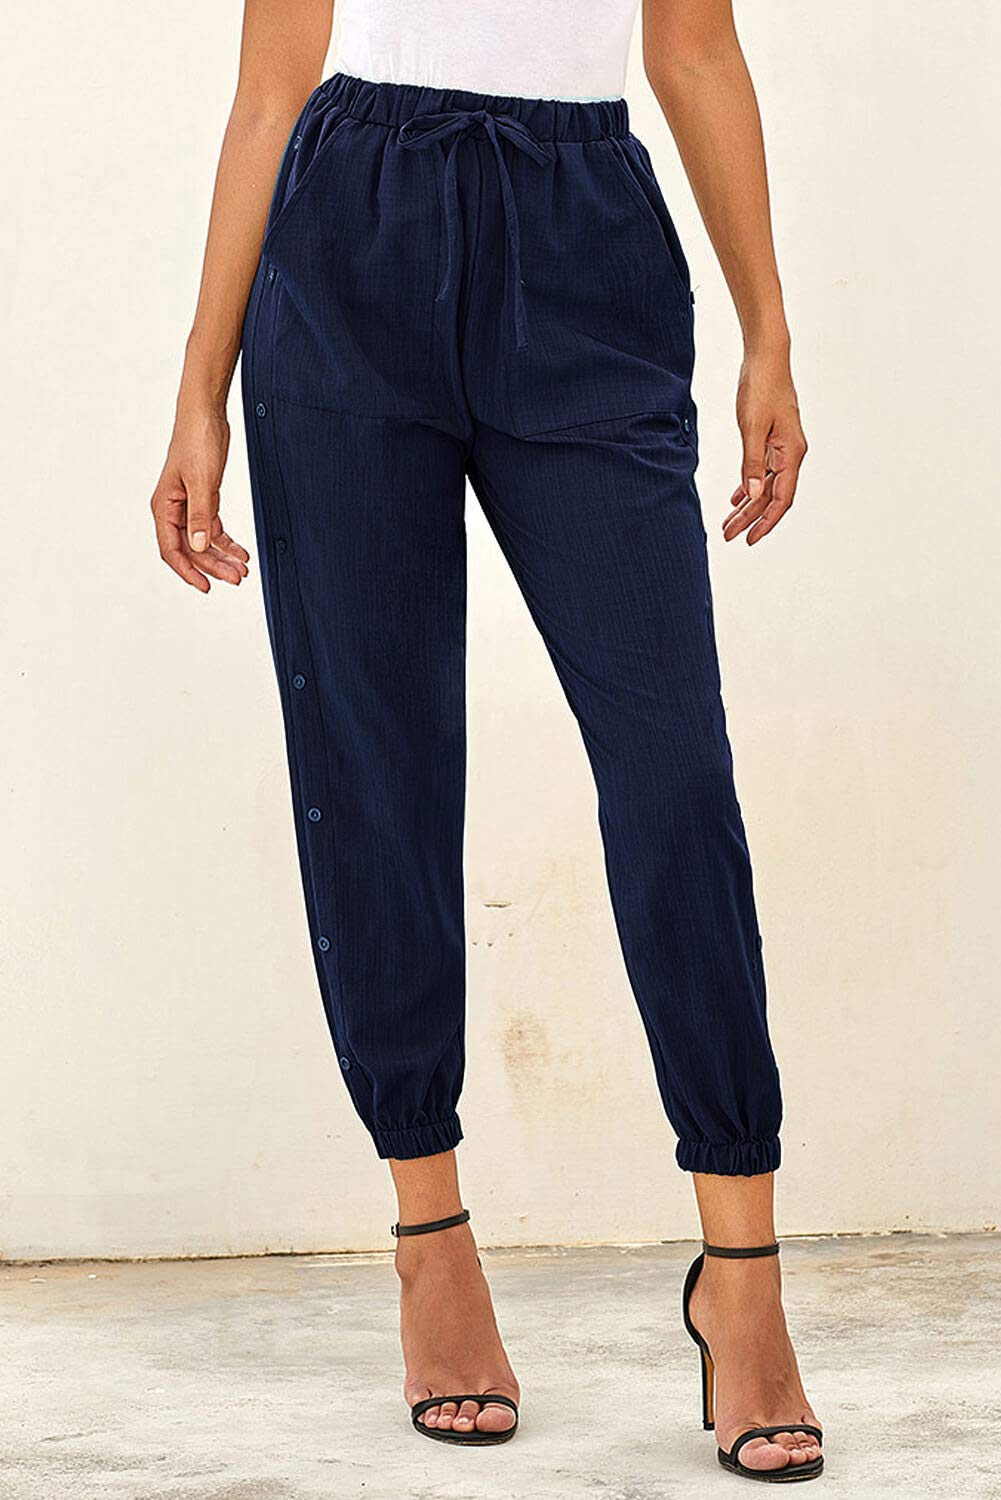 NEWFANGLE Women\'s Linen Casual Pants Drawstring Elastic Waist with Pockets Solid Comfy Loose Fit Trousers,Navy Blue,M